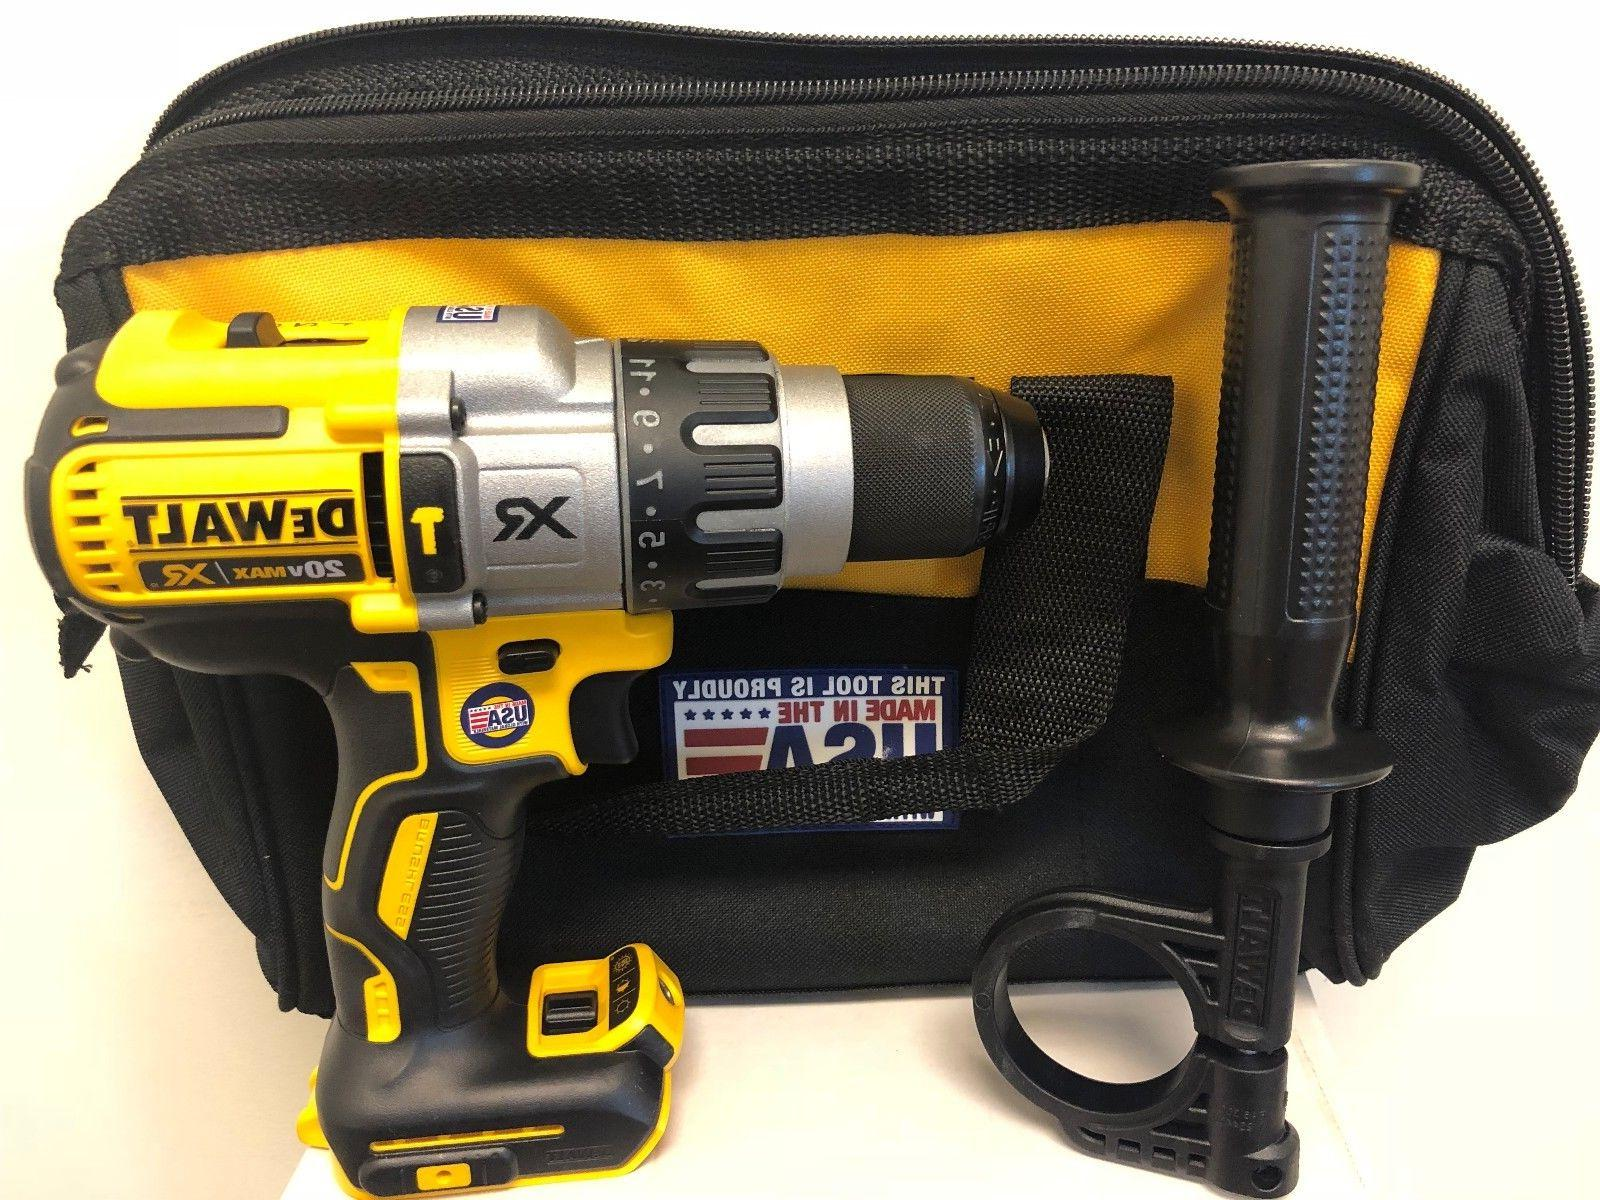 Brand New DEWALT DCD996B 20V MAX Brushless 3-Speed Hammerdri